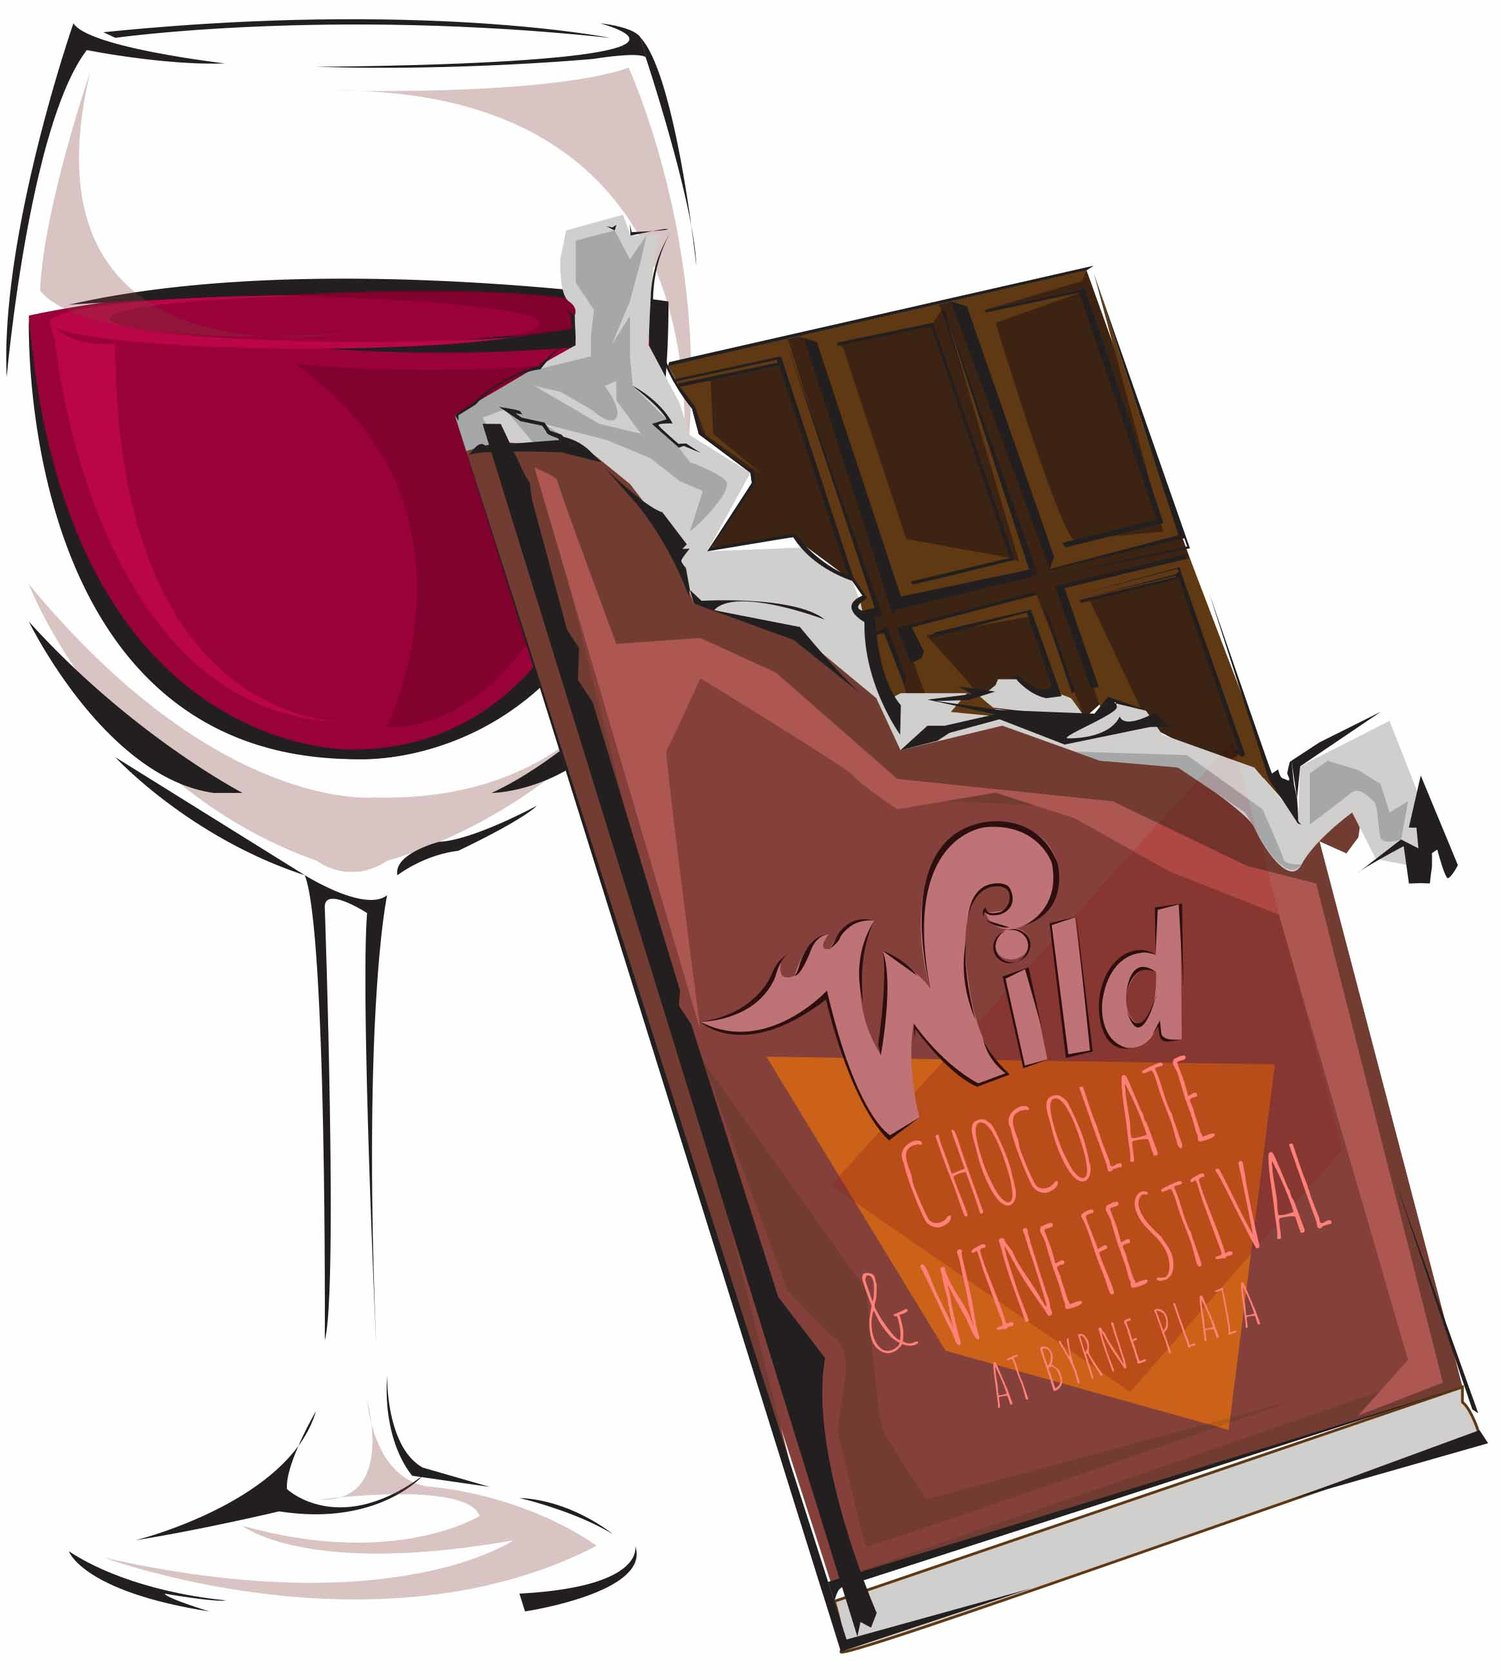 Wild Chocolate and Wine Fest